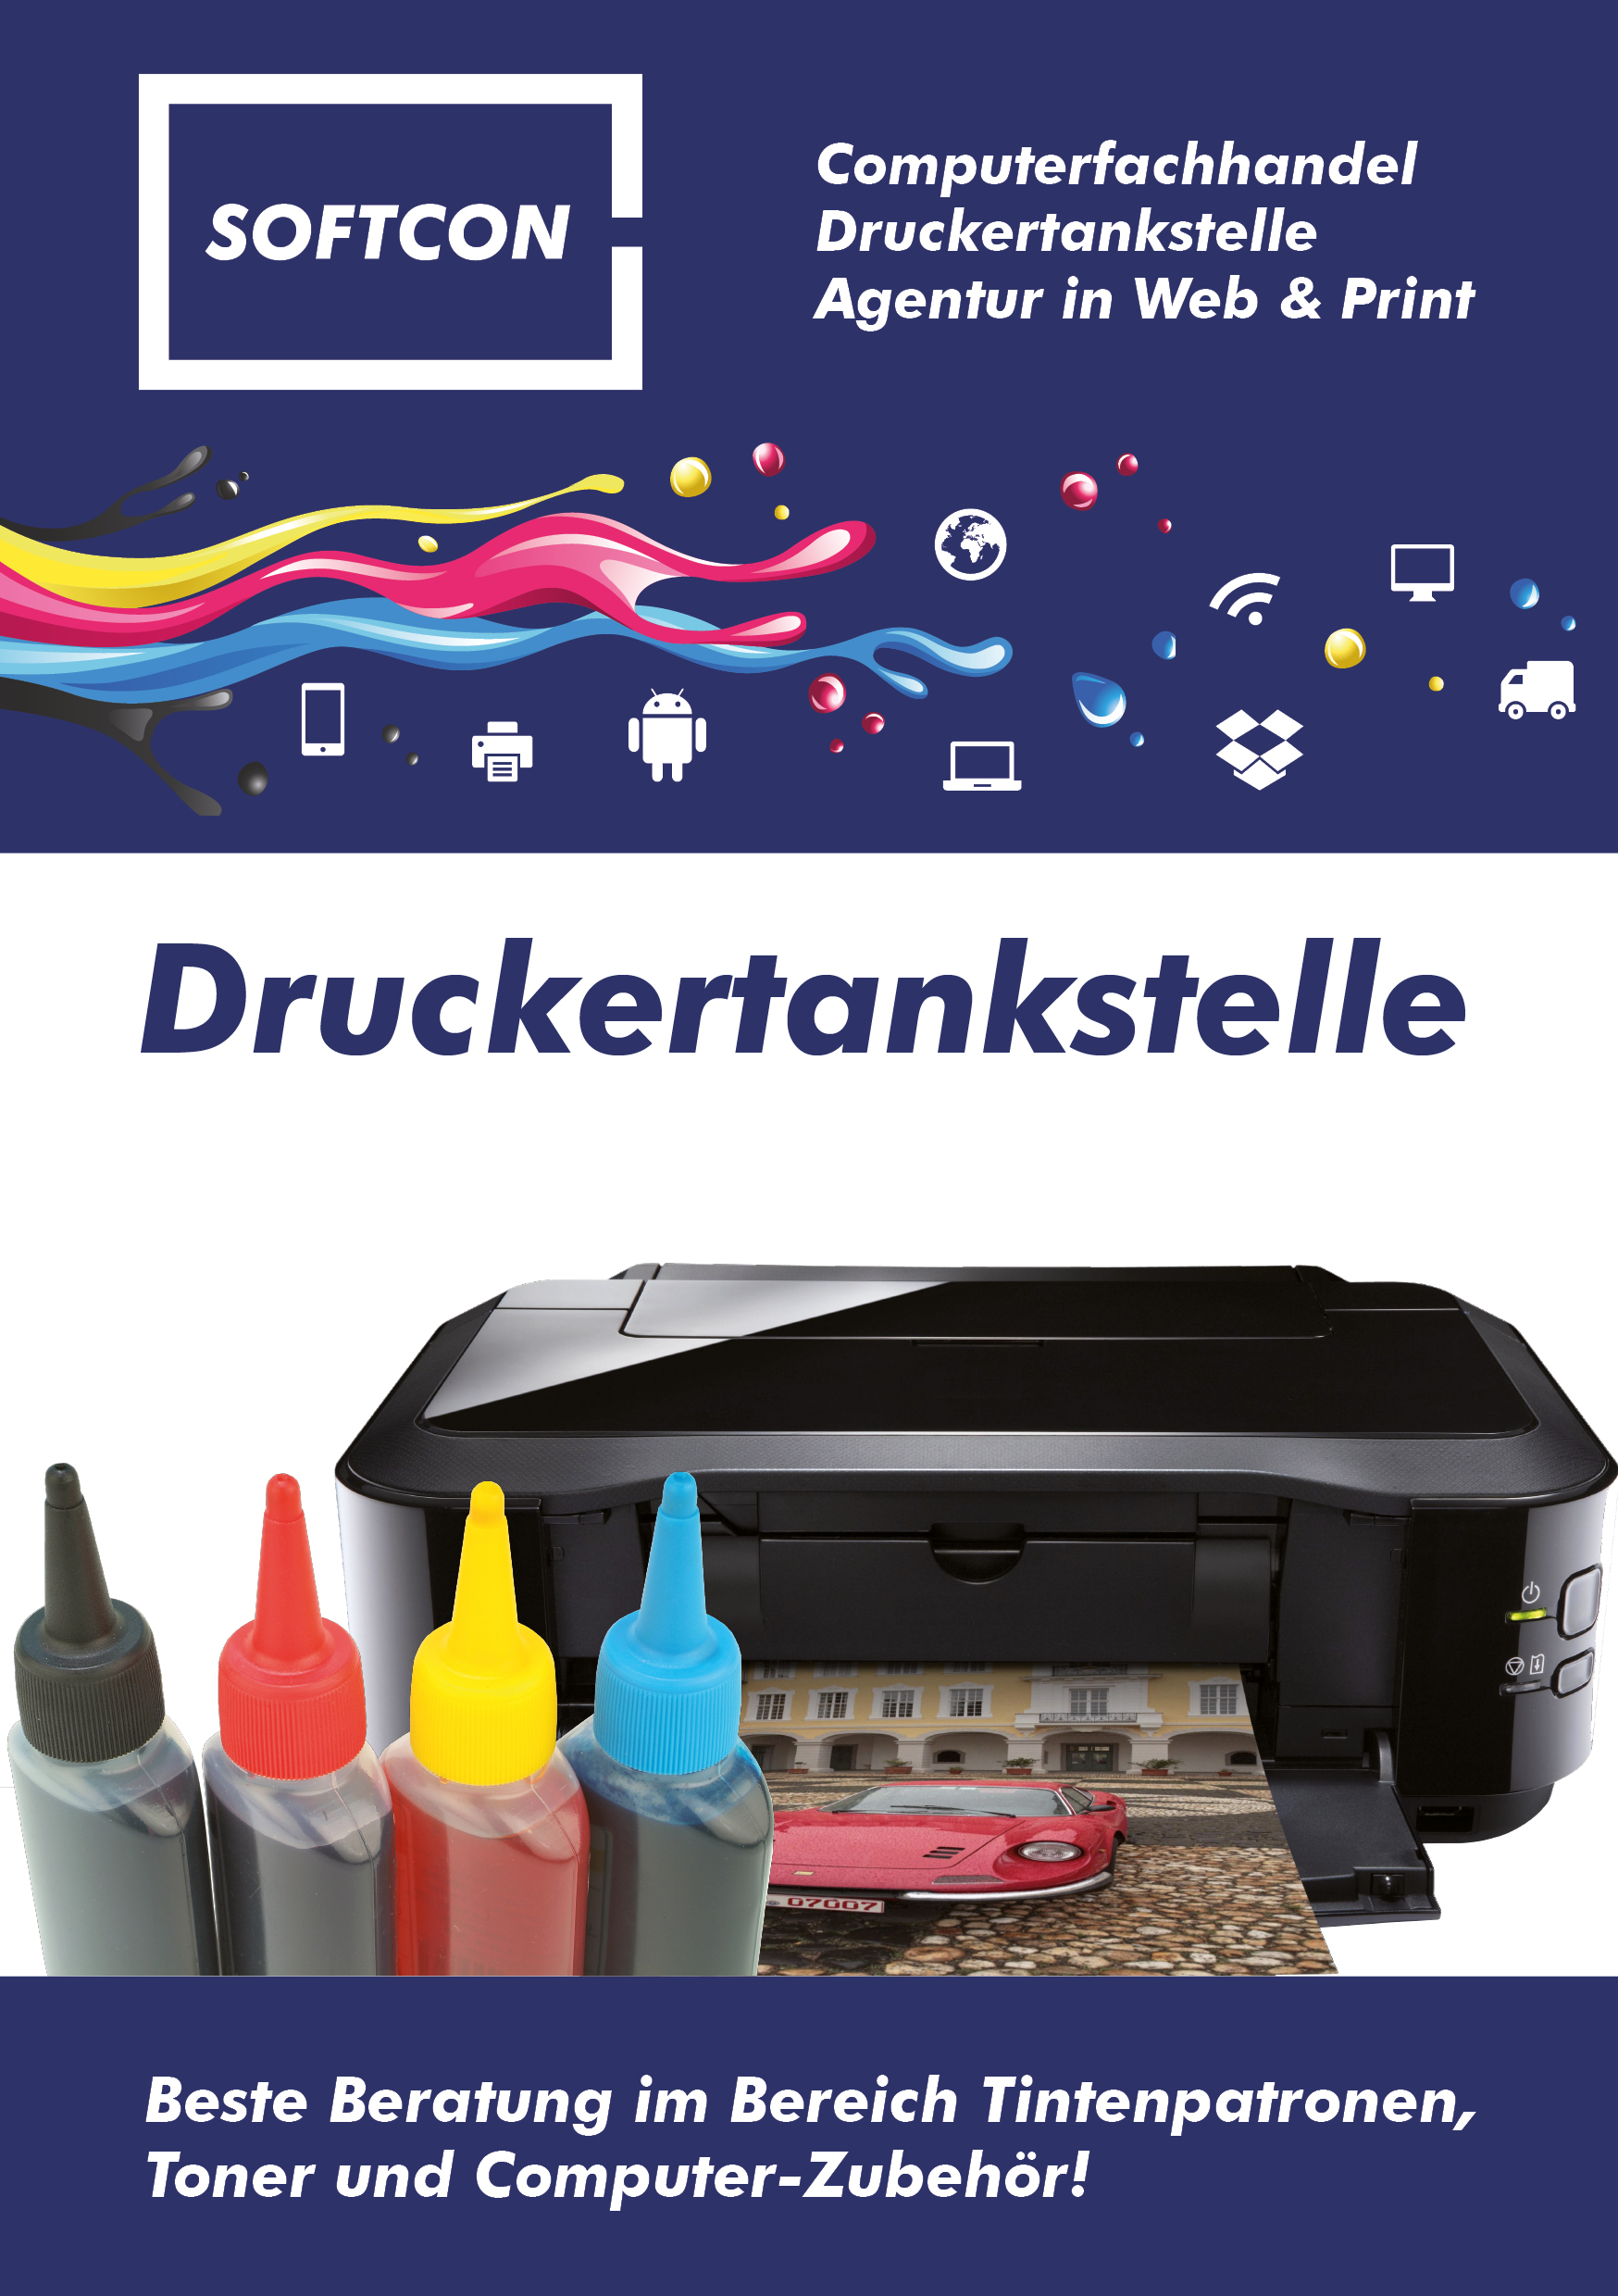 SOFTCON Druckertankstelle